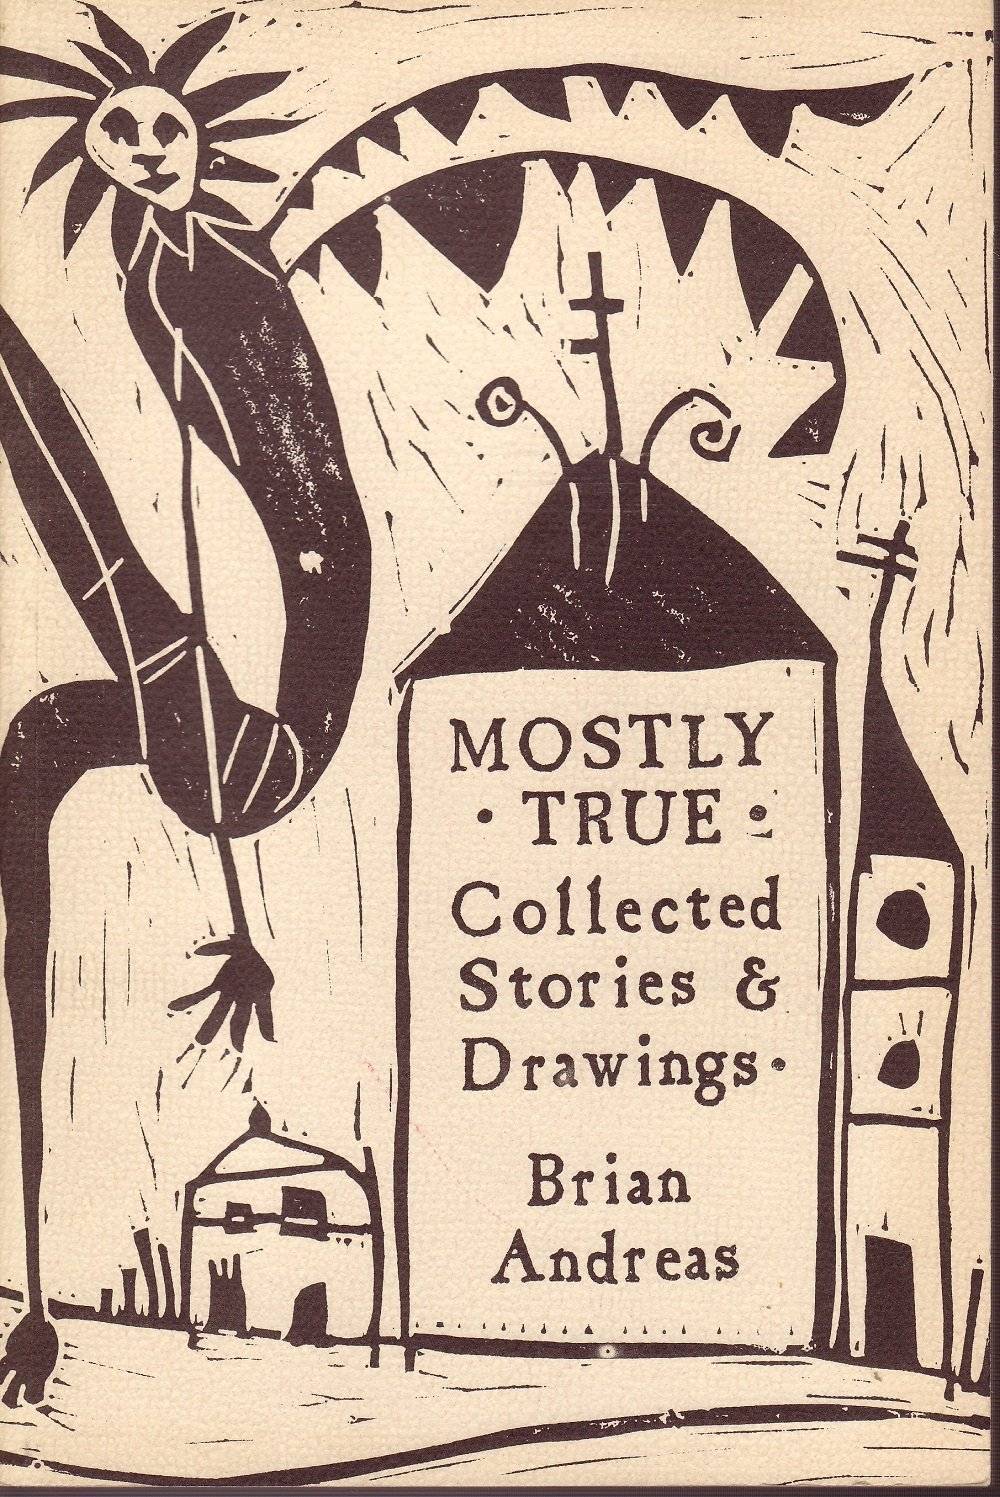 Mostly True Collected Stories & Drawings, Brian Andreas